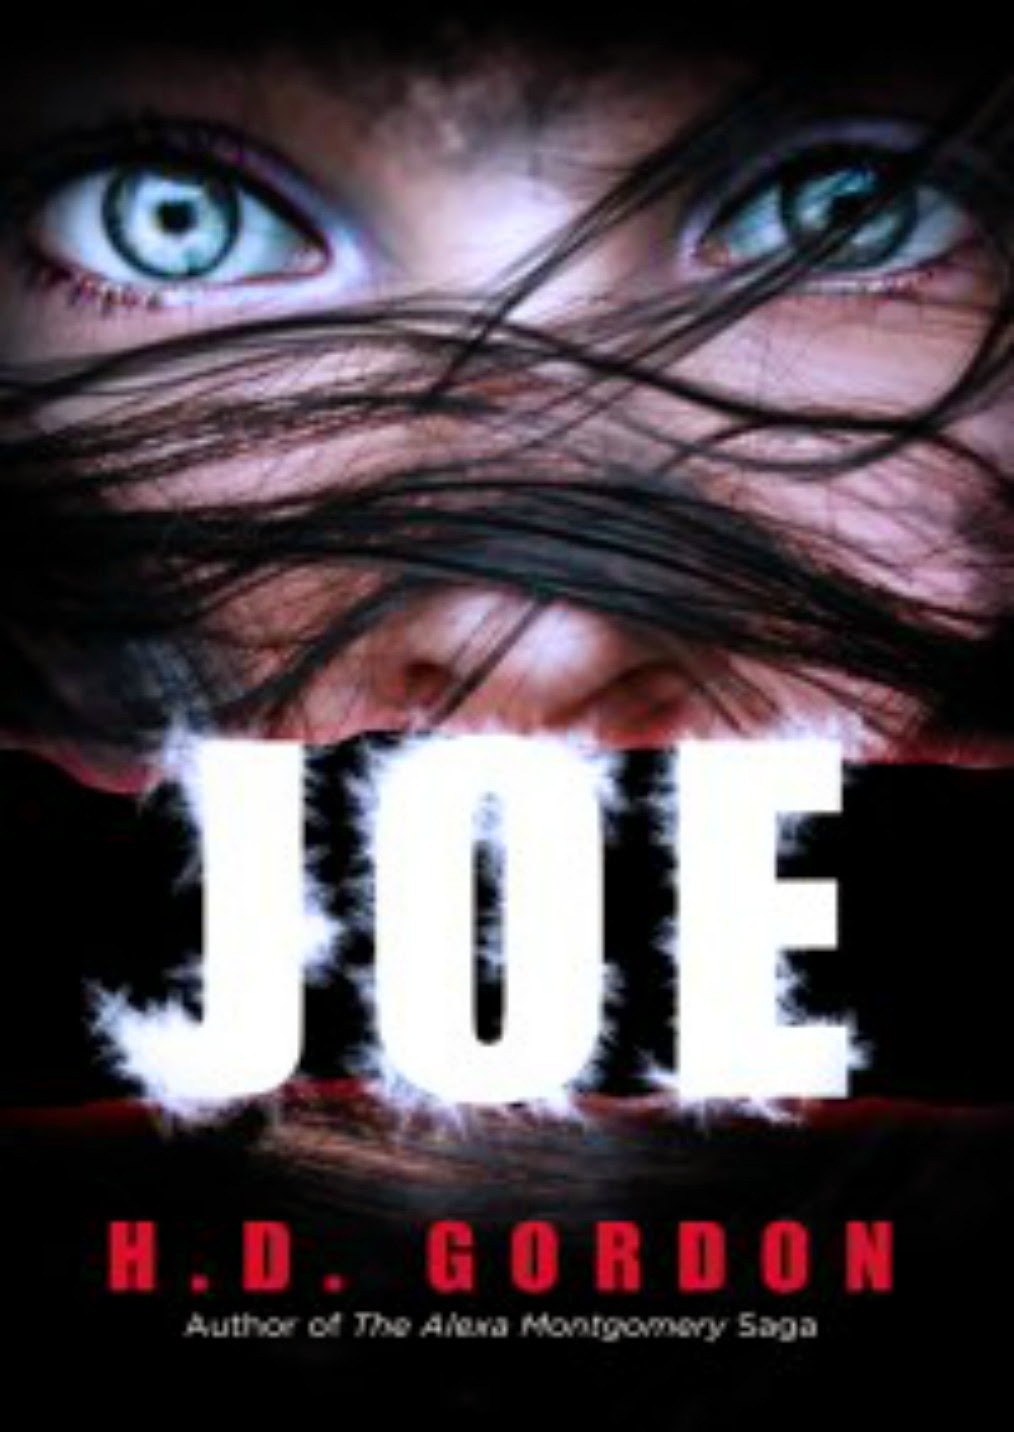 Book excerpt for paranormal thriller novel Joe by H.D. Gordon